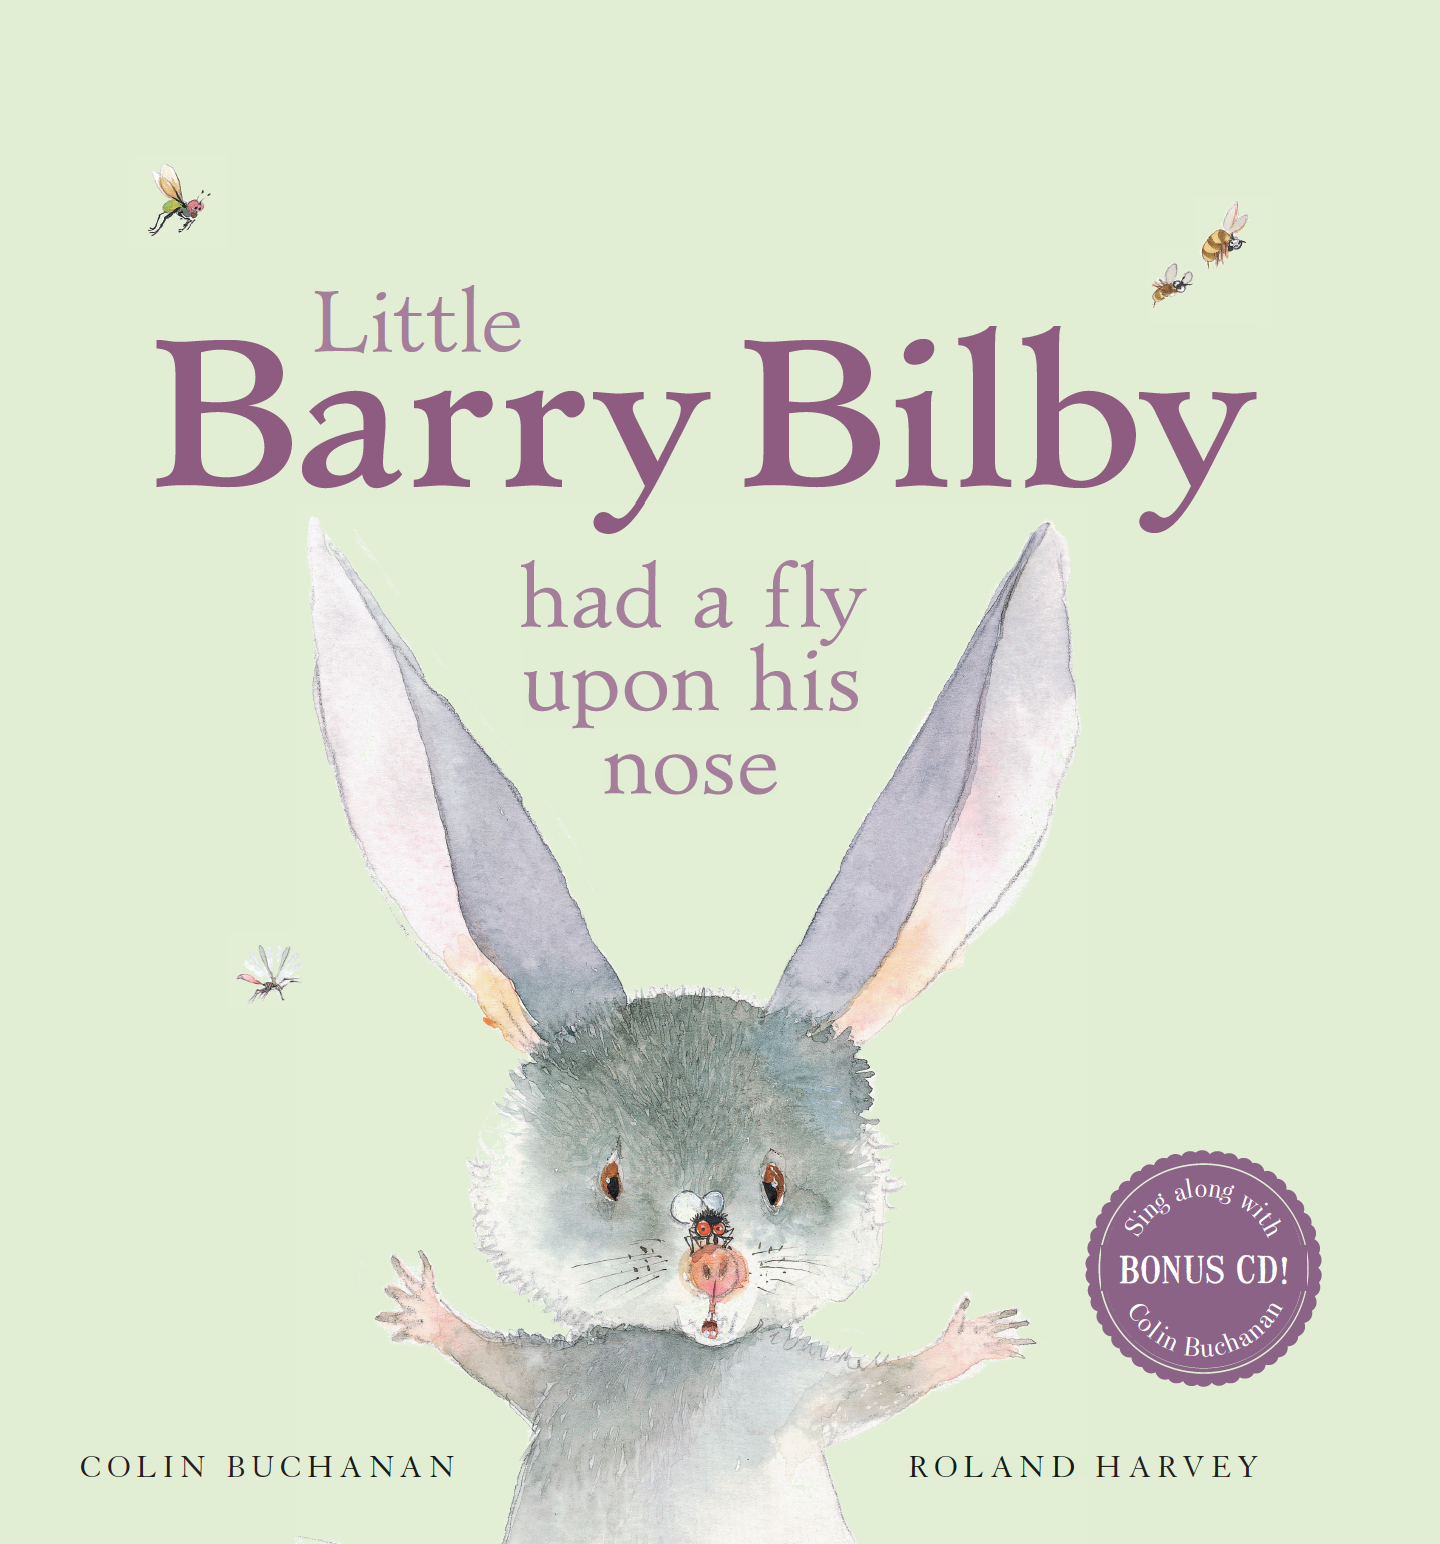 Little Barry Bilby